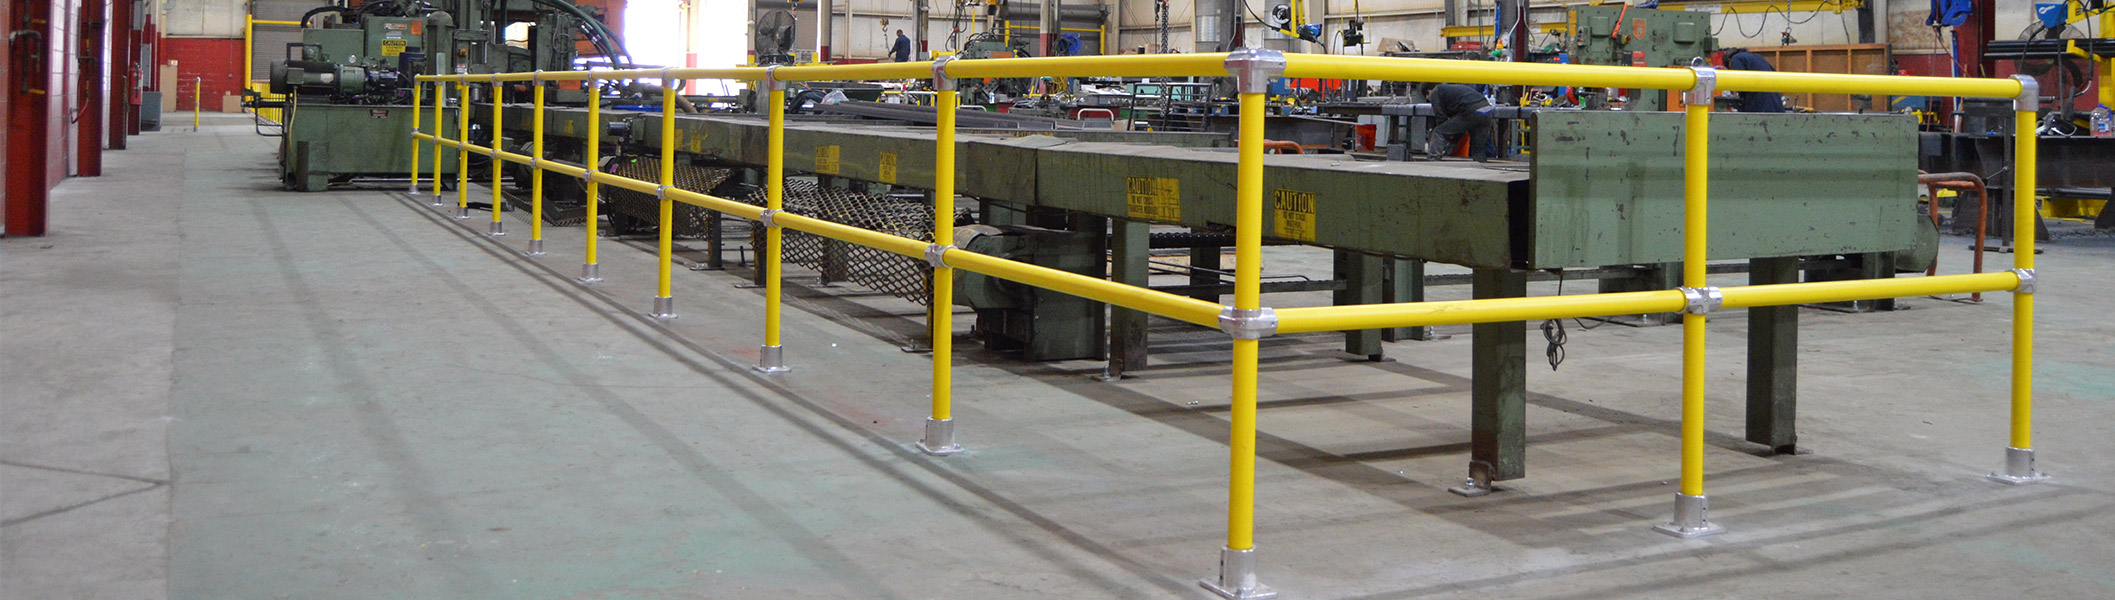 Ideal Shield Steel Pipe and Plastic Handrail